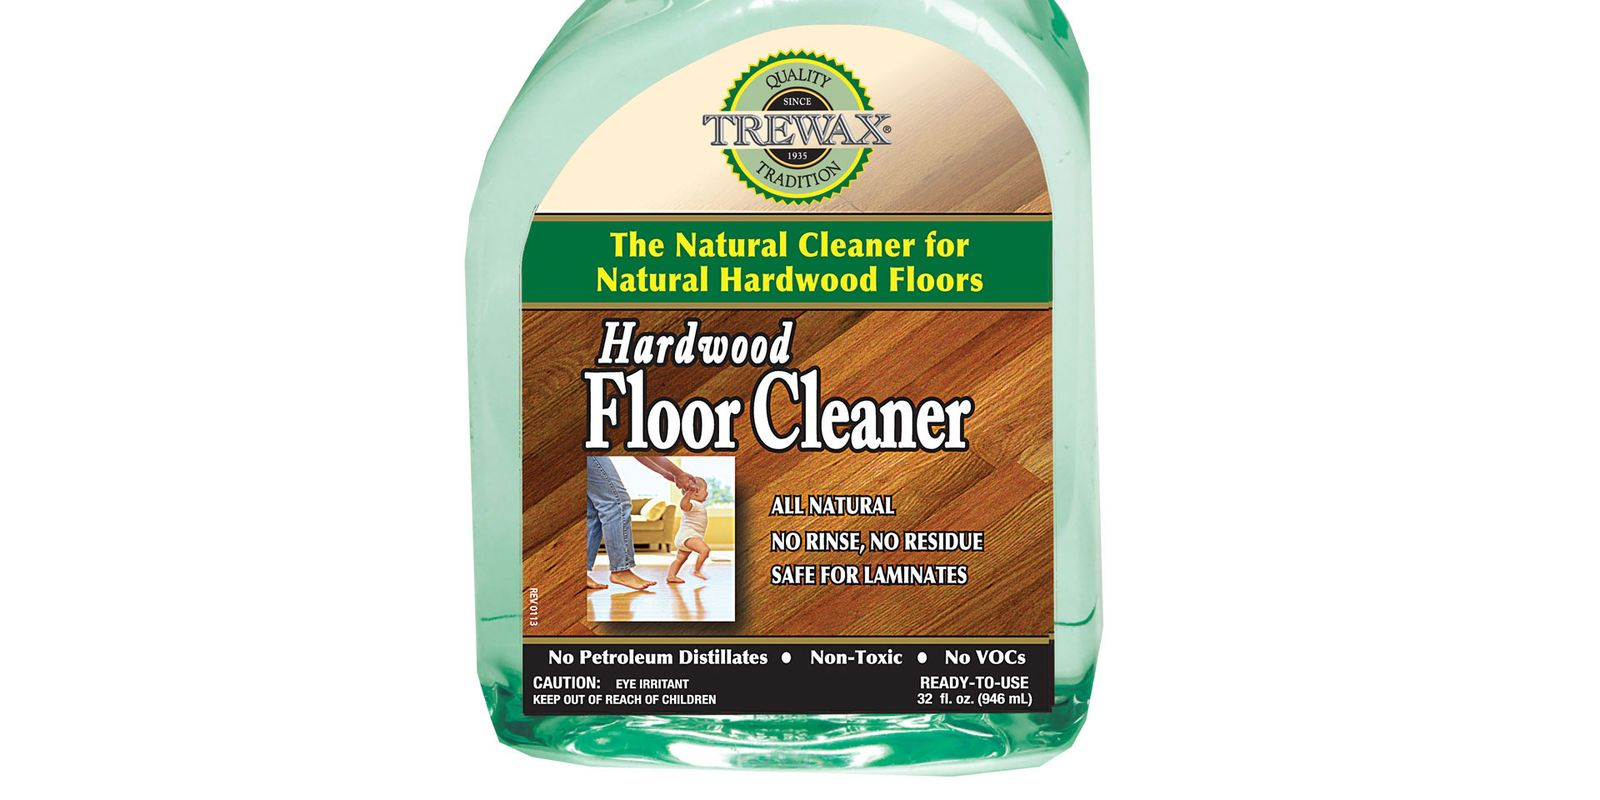 Trewax Hardwood Floor Cleaner Review